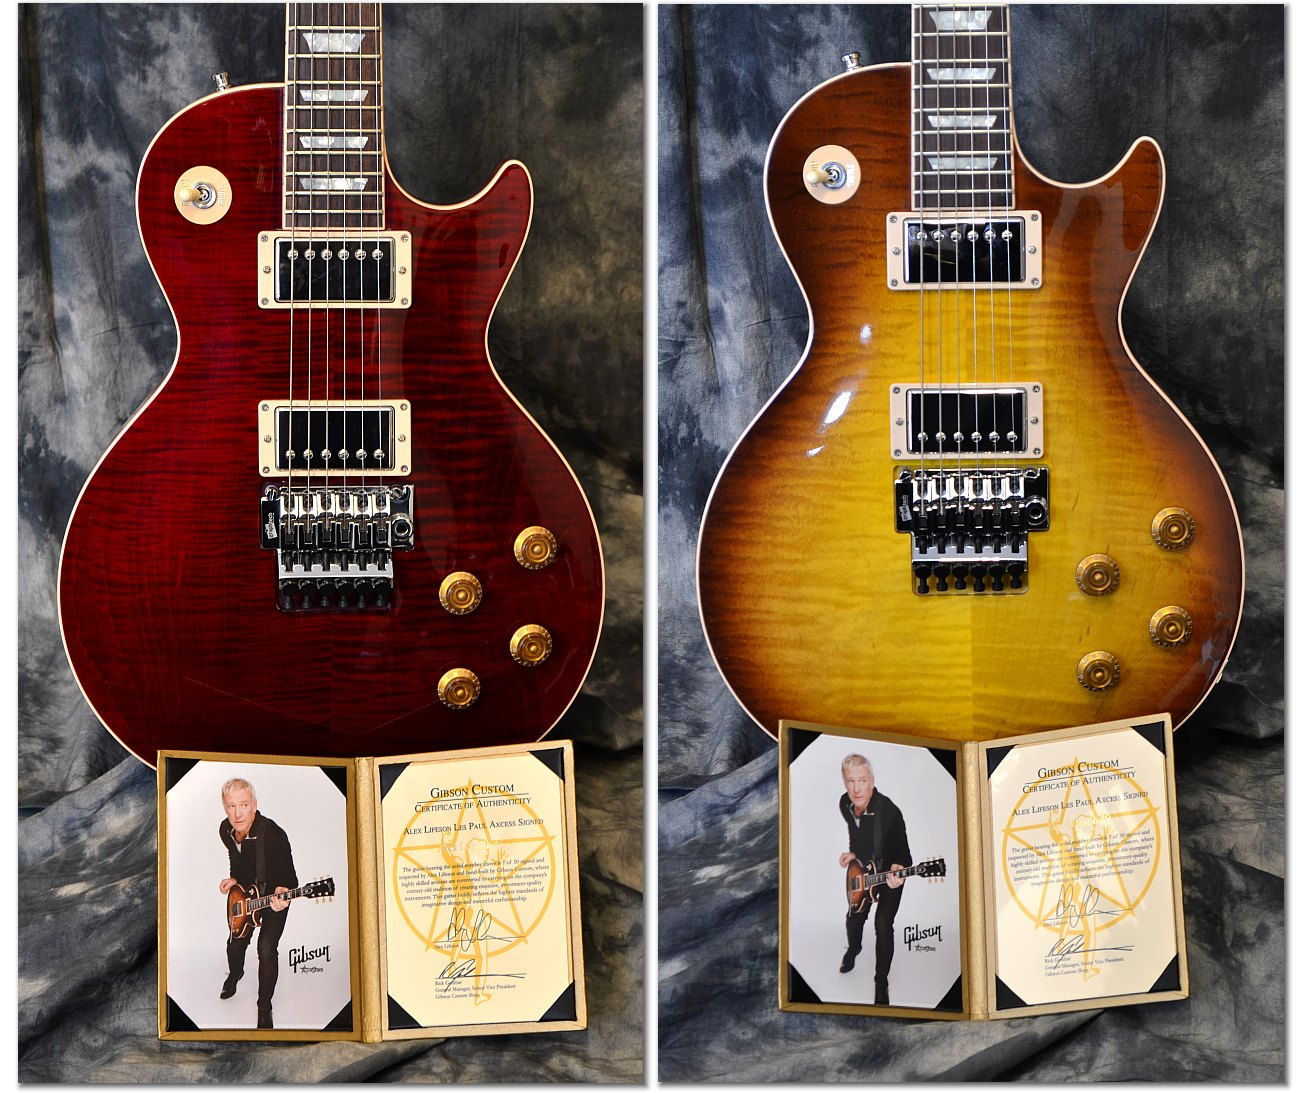 Gibson Hand Signed Alex Lifeson Les Paul Axcess Www12fretcom